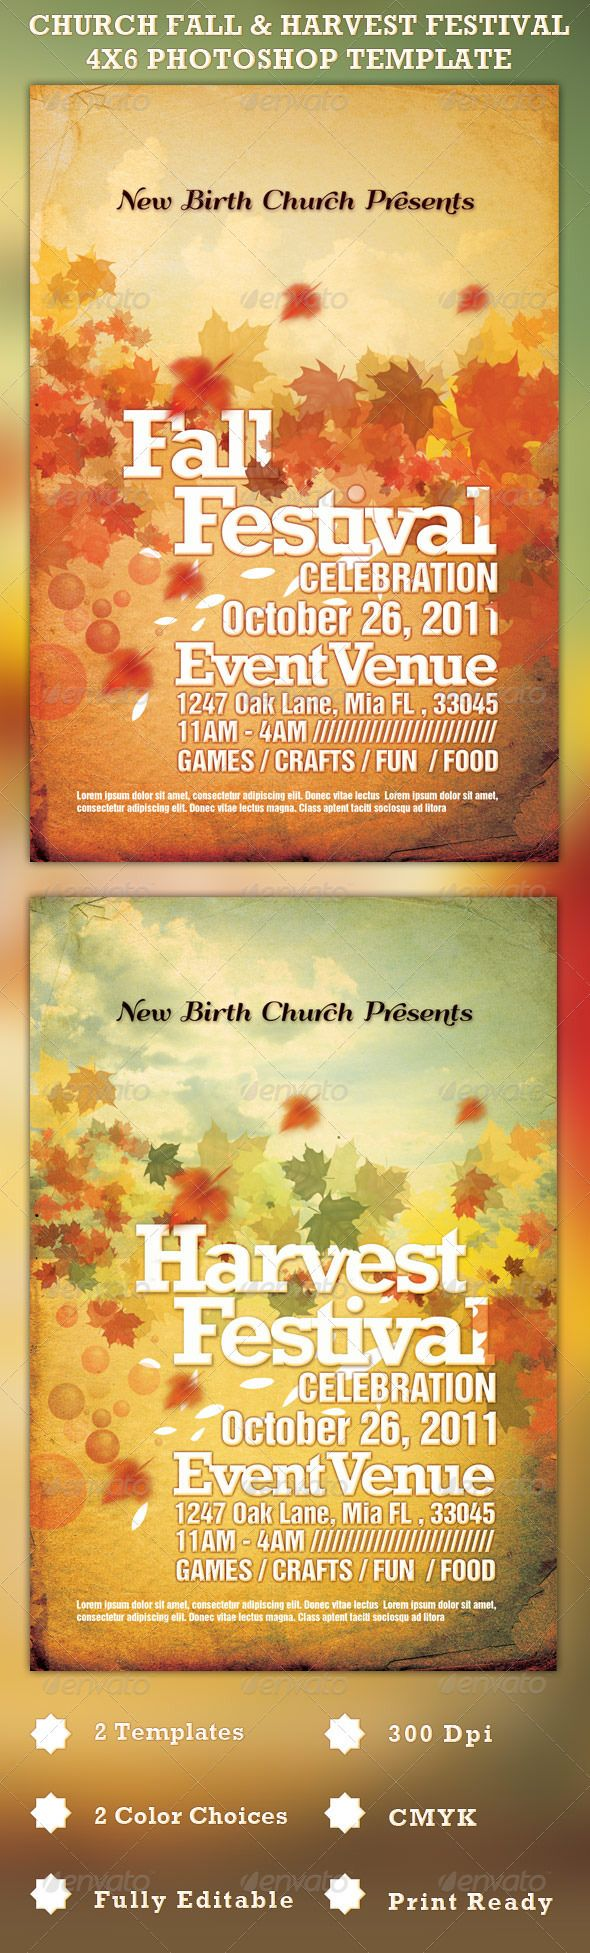 This Photoshop Template is great for any Church Fall or Harvest Festival, but can be used for just about any autumn season event. Layered Photoshop file is color coded and organized in folders. Font download links included. - Price: $6.00